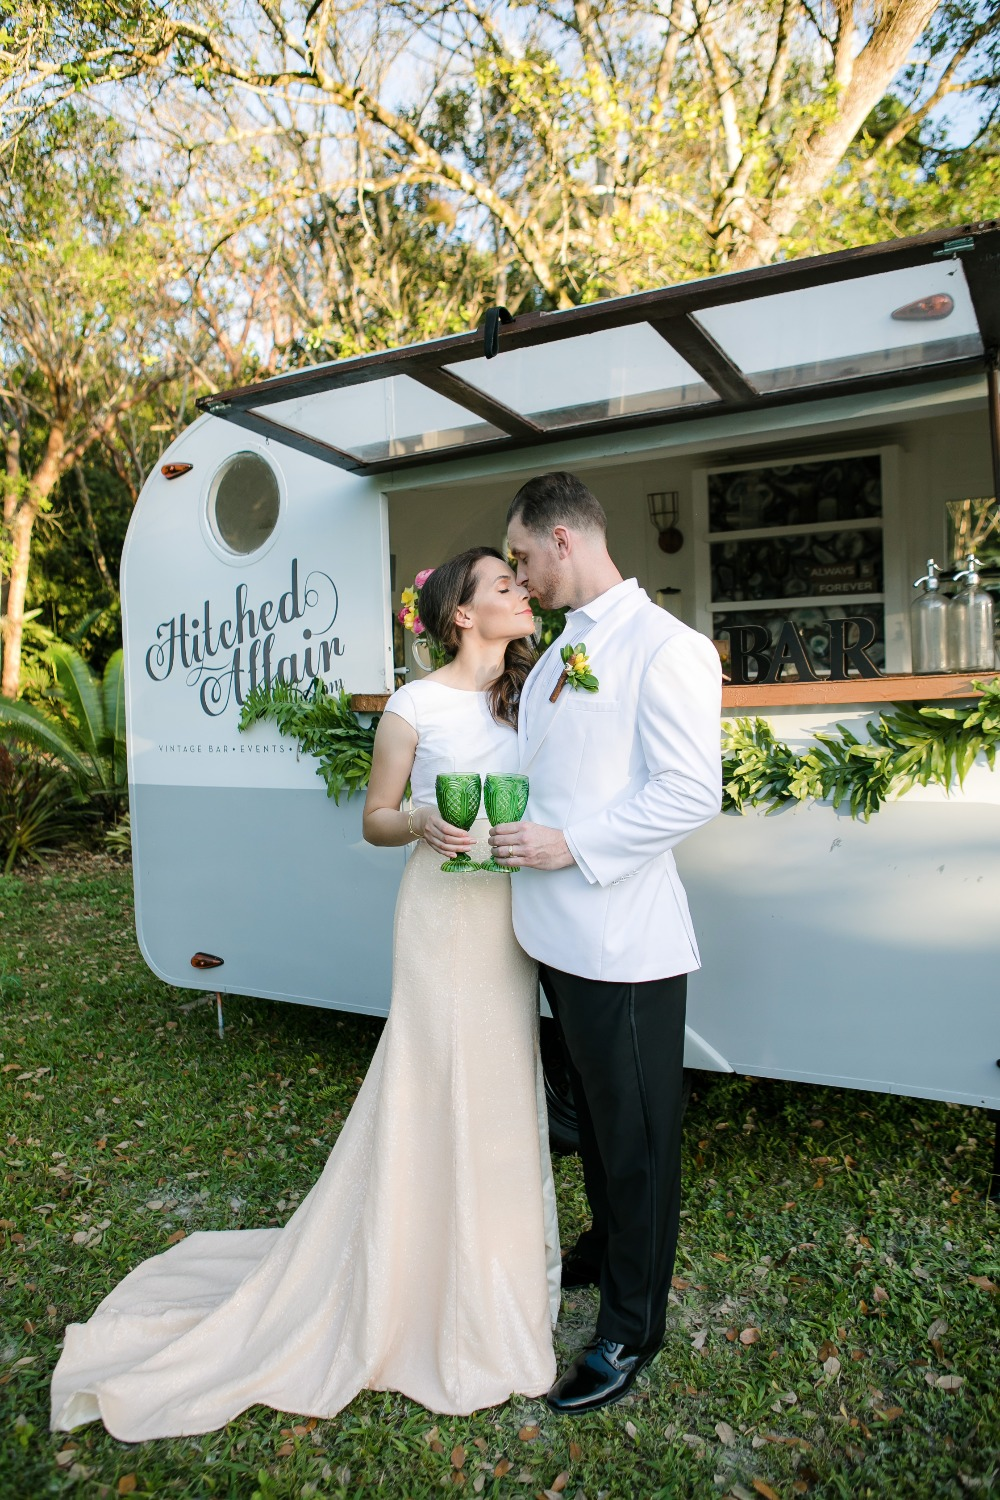 Hitched Affair wedding bar trailer